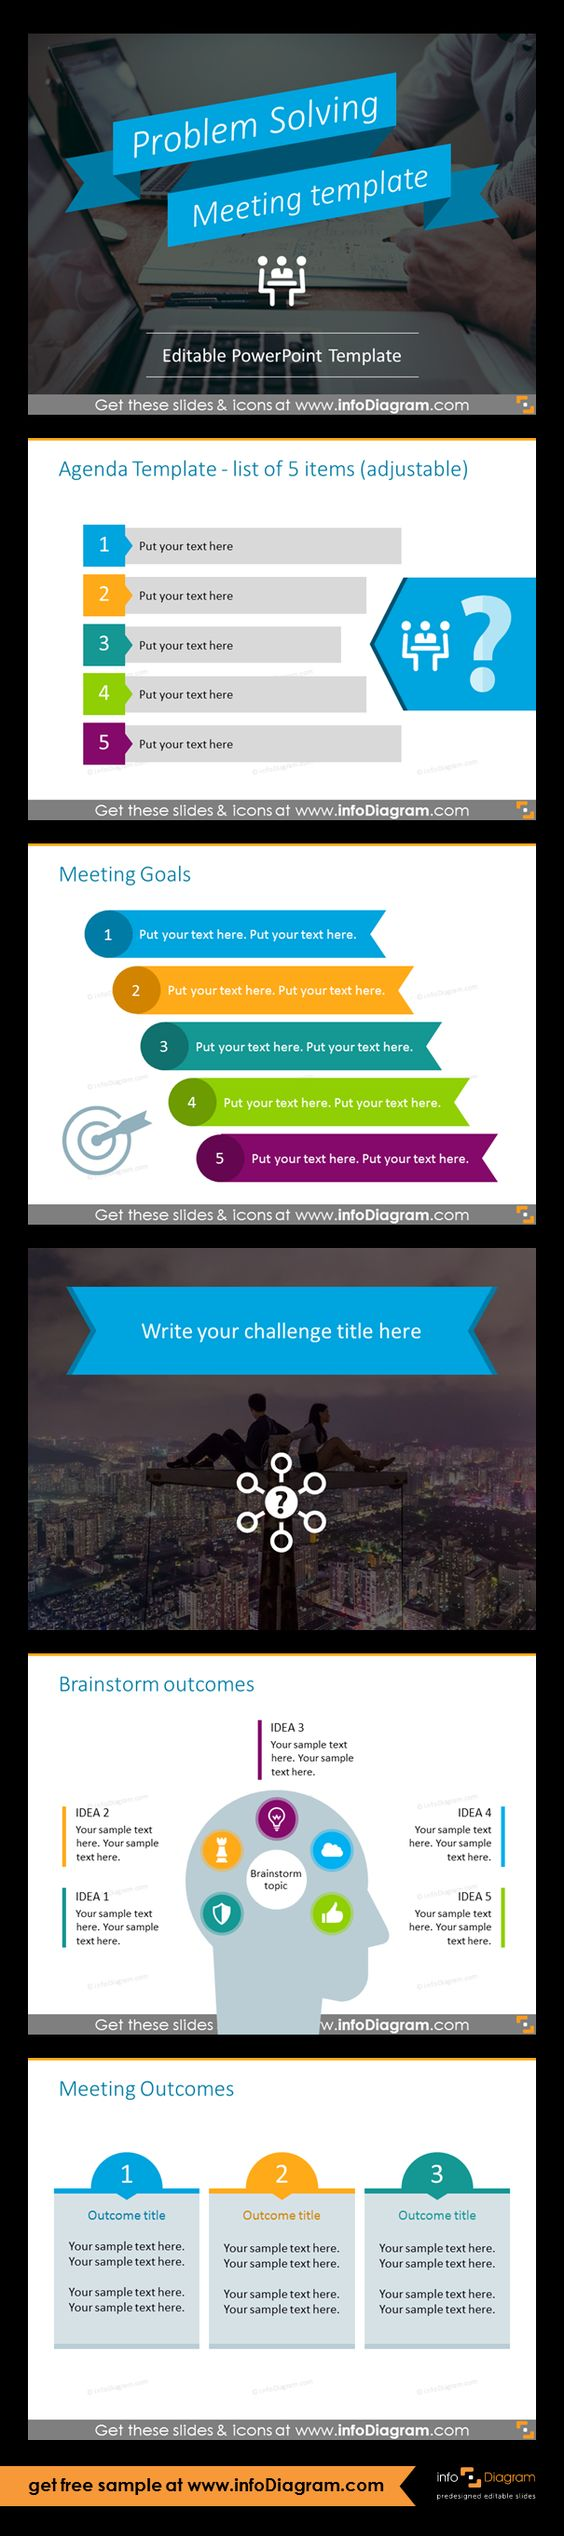 Powerpoint template for running effective meeting business powerpoint template for running effective meeting business meeting type problem solving by defining a challenge doing team brainstorming and eva toneelgroepblik Image collections